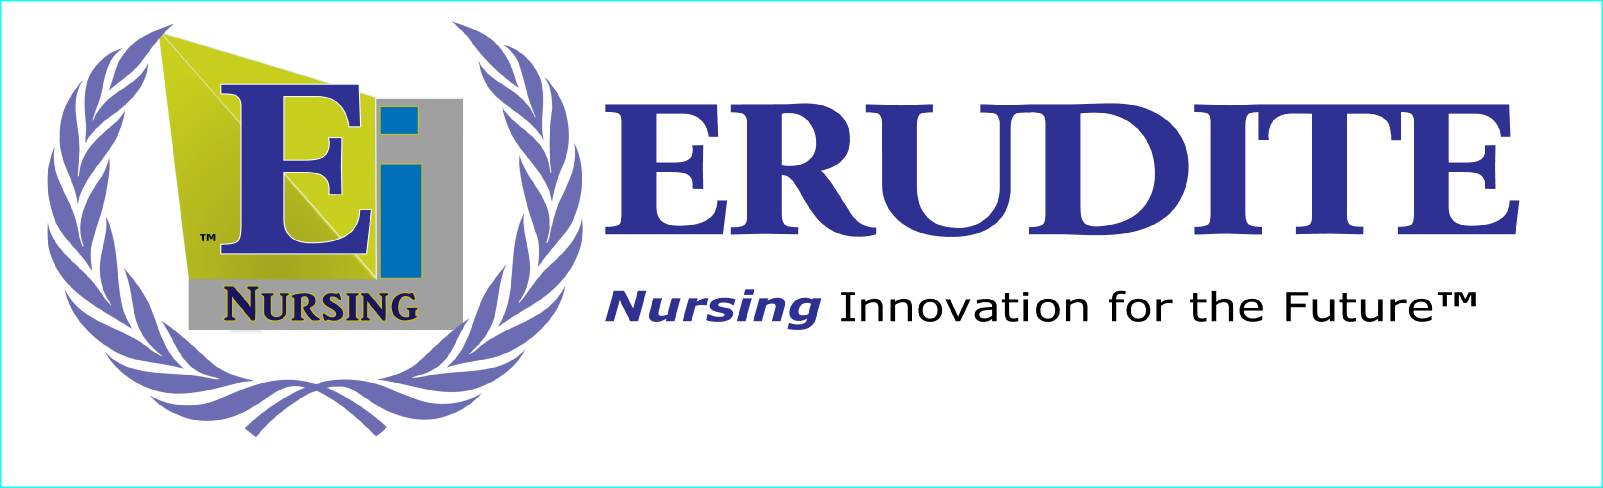 Erudite Nursing Institute™ Support Center